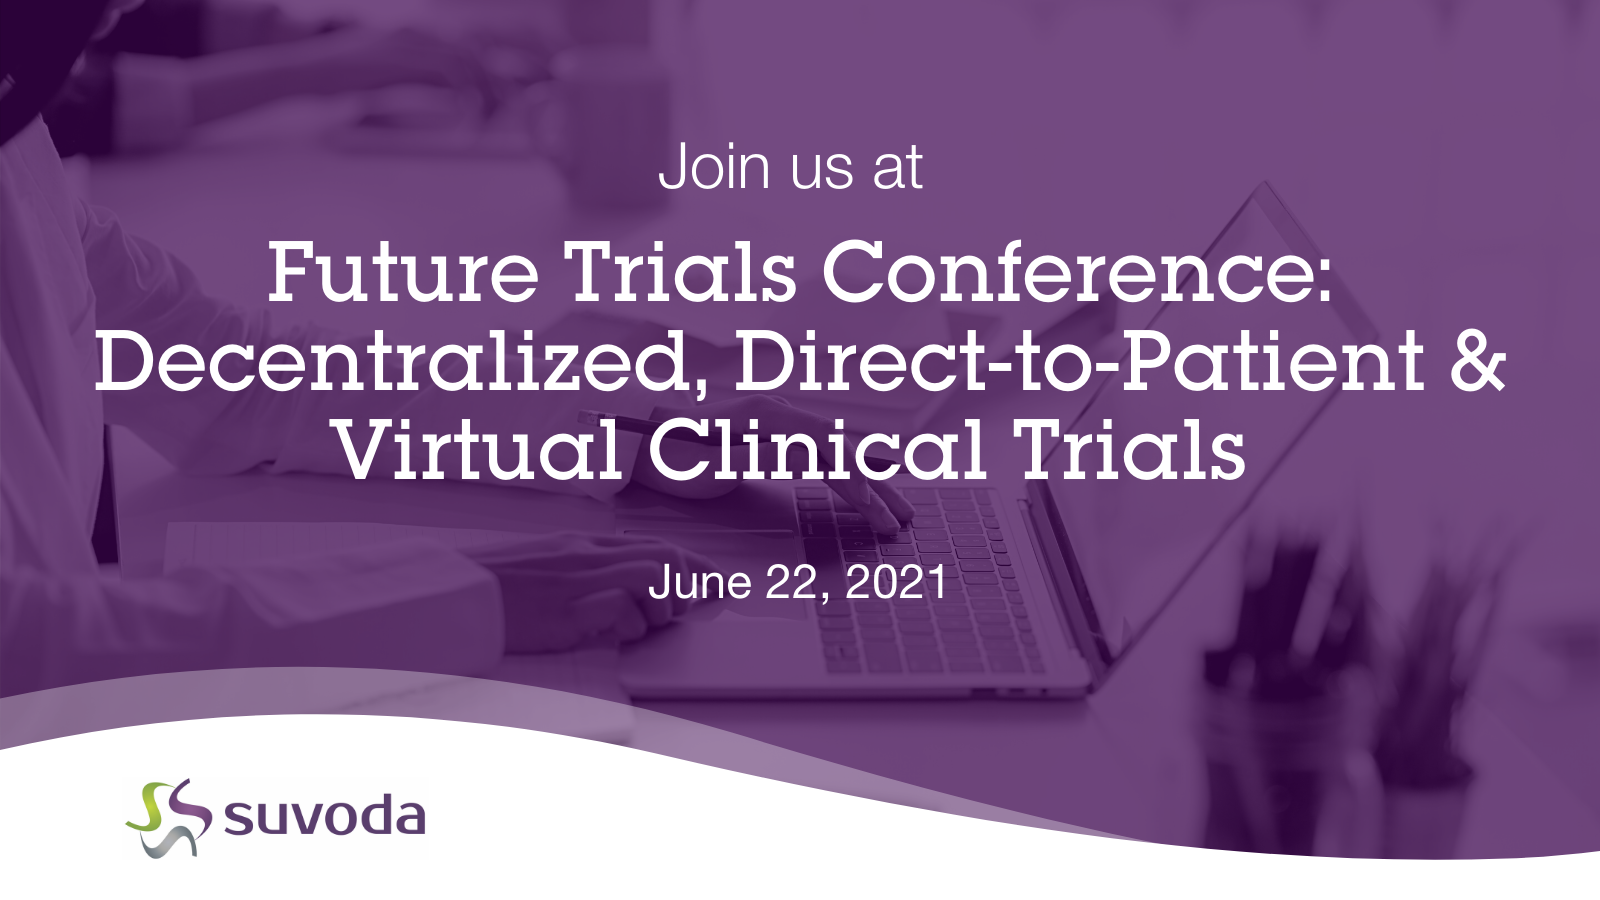 Future Trials Conference: Decentralized, Direct-To-Patient & Virtual Clinical Trials